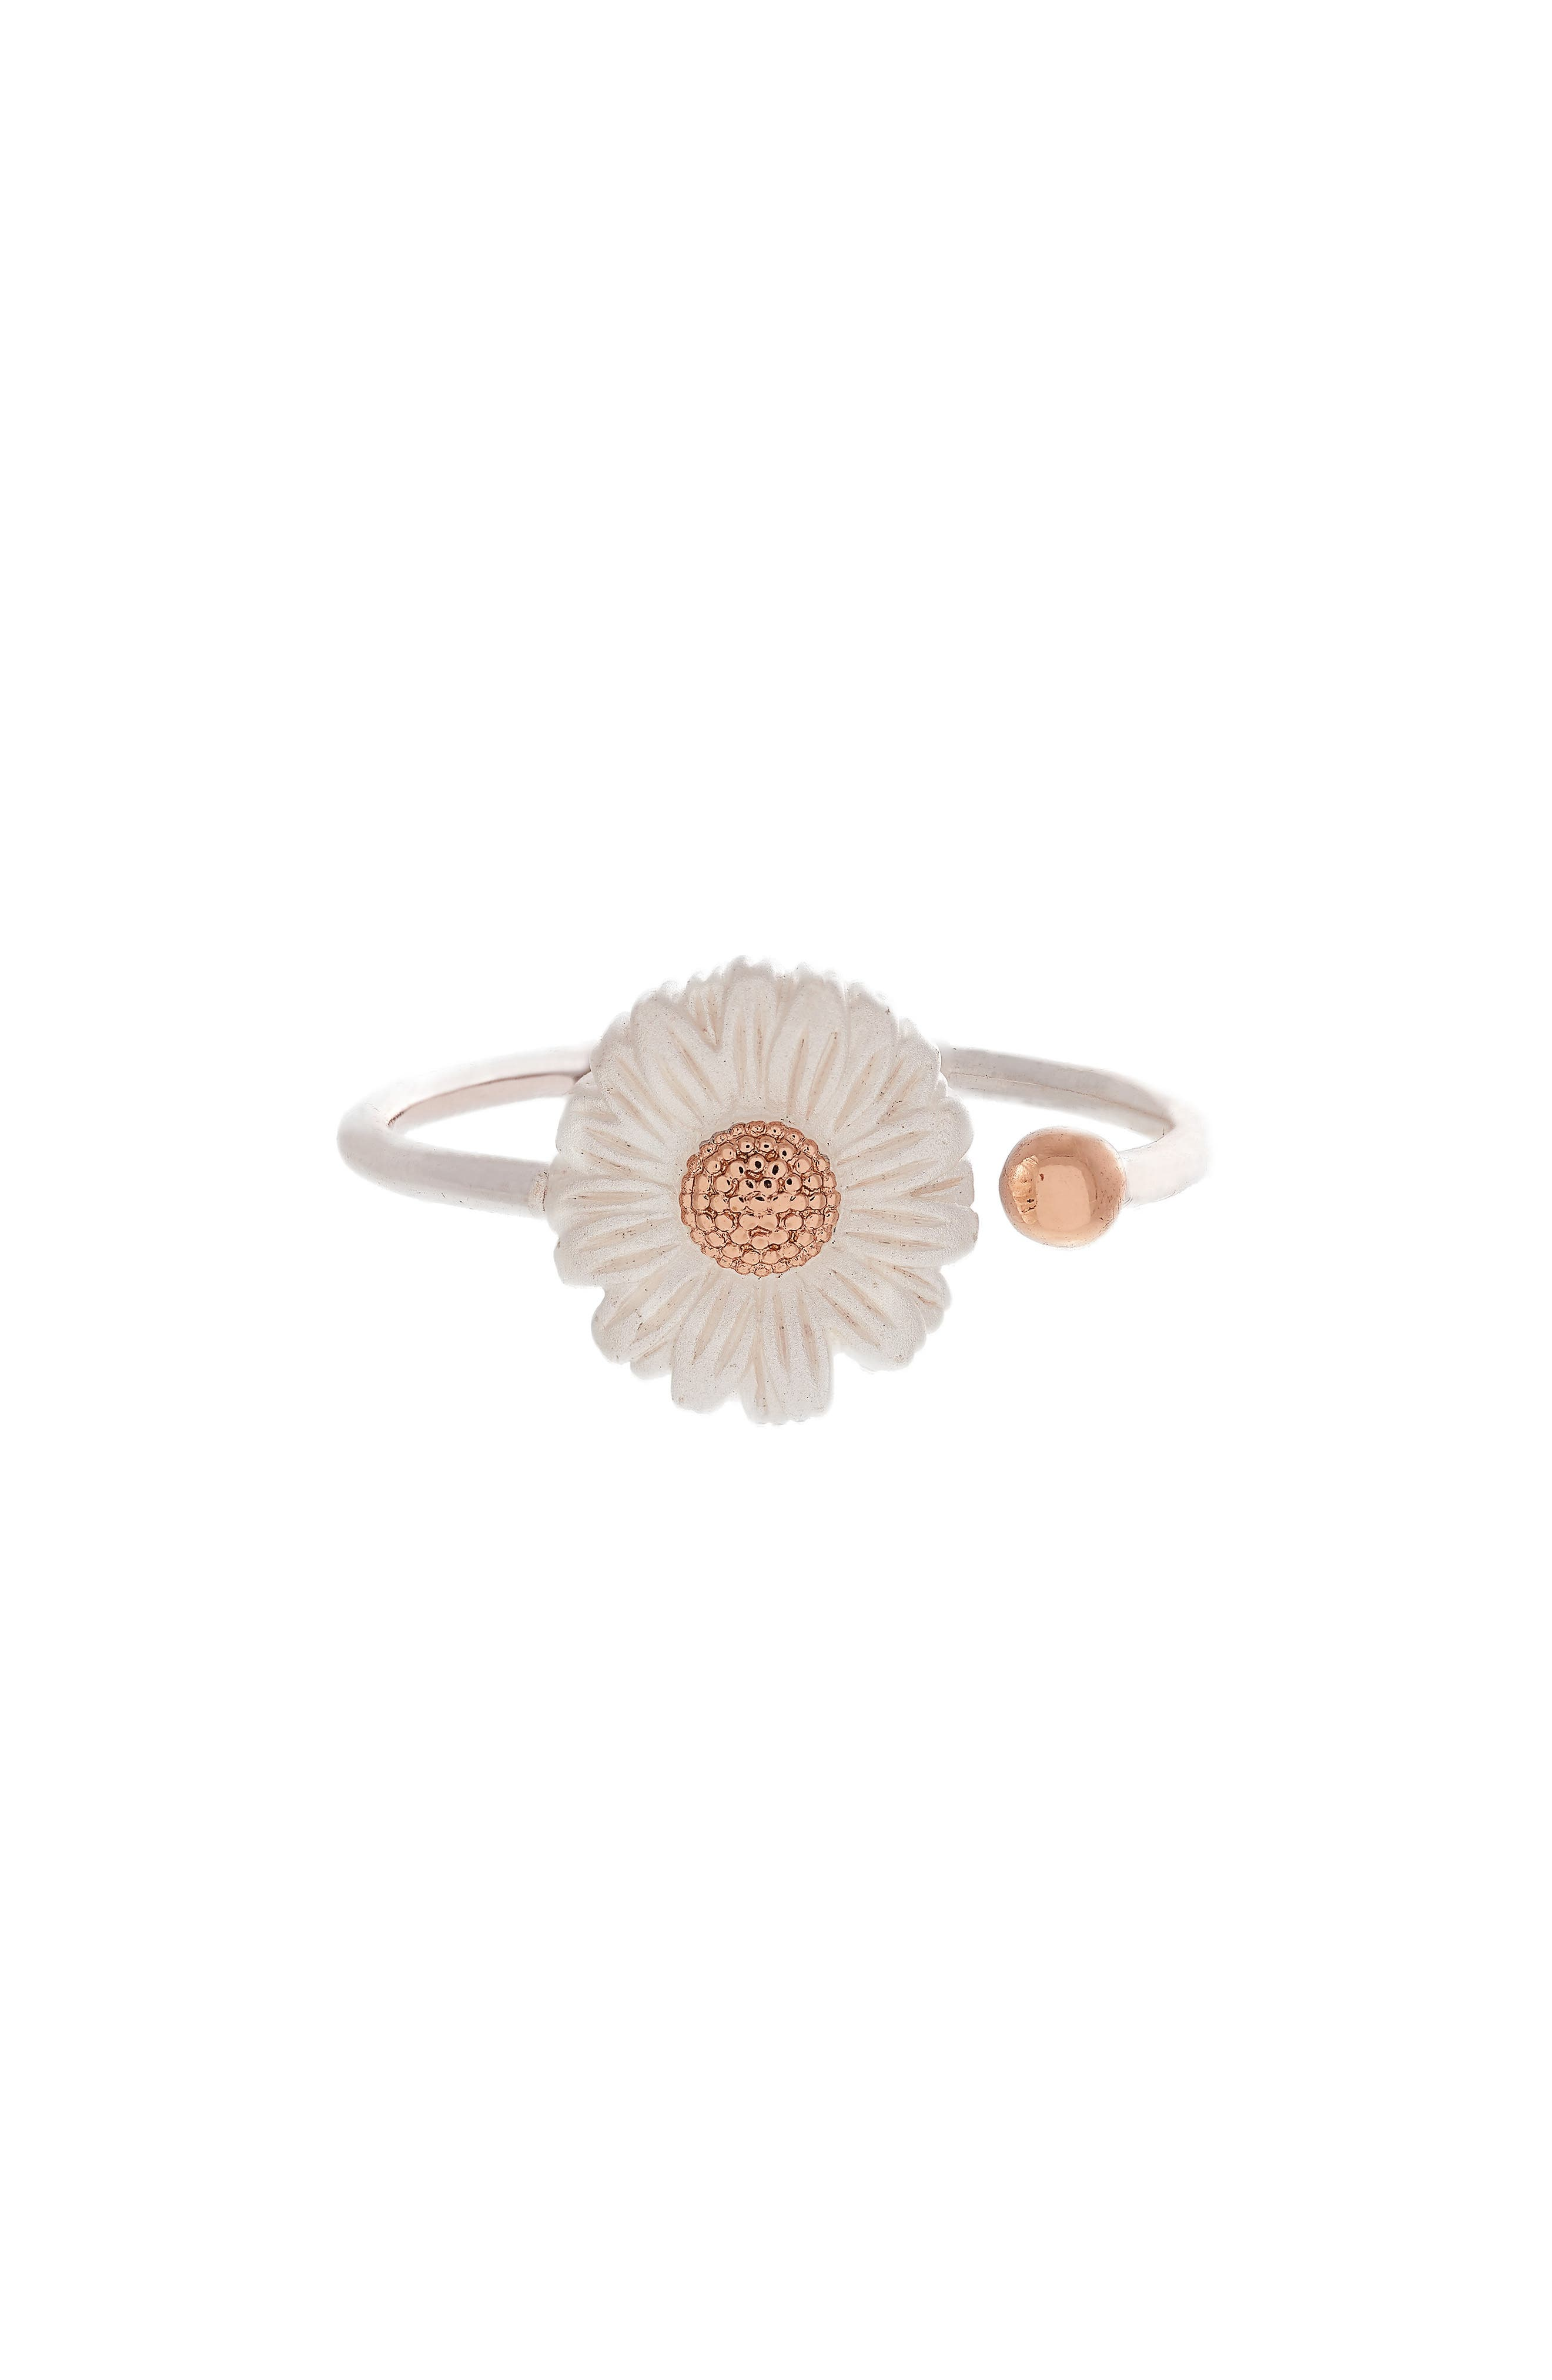 Daisy Ring,                         Main,                         color, SILVER/ ROSE GOLD